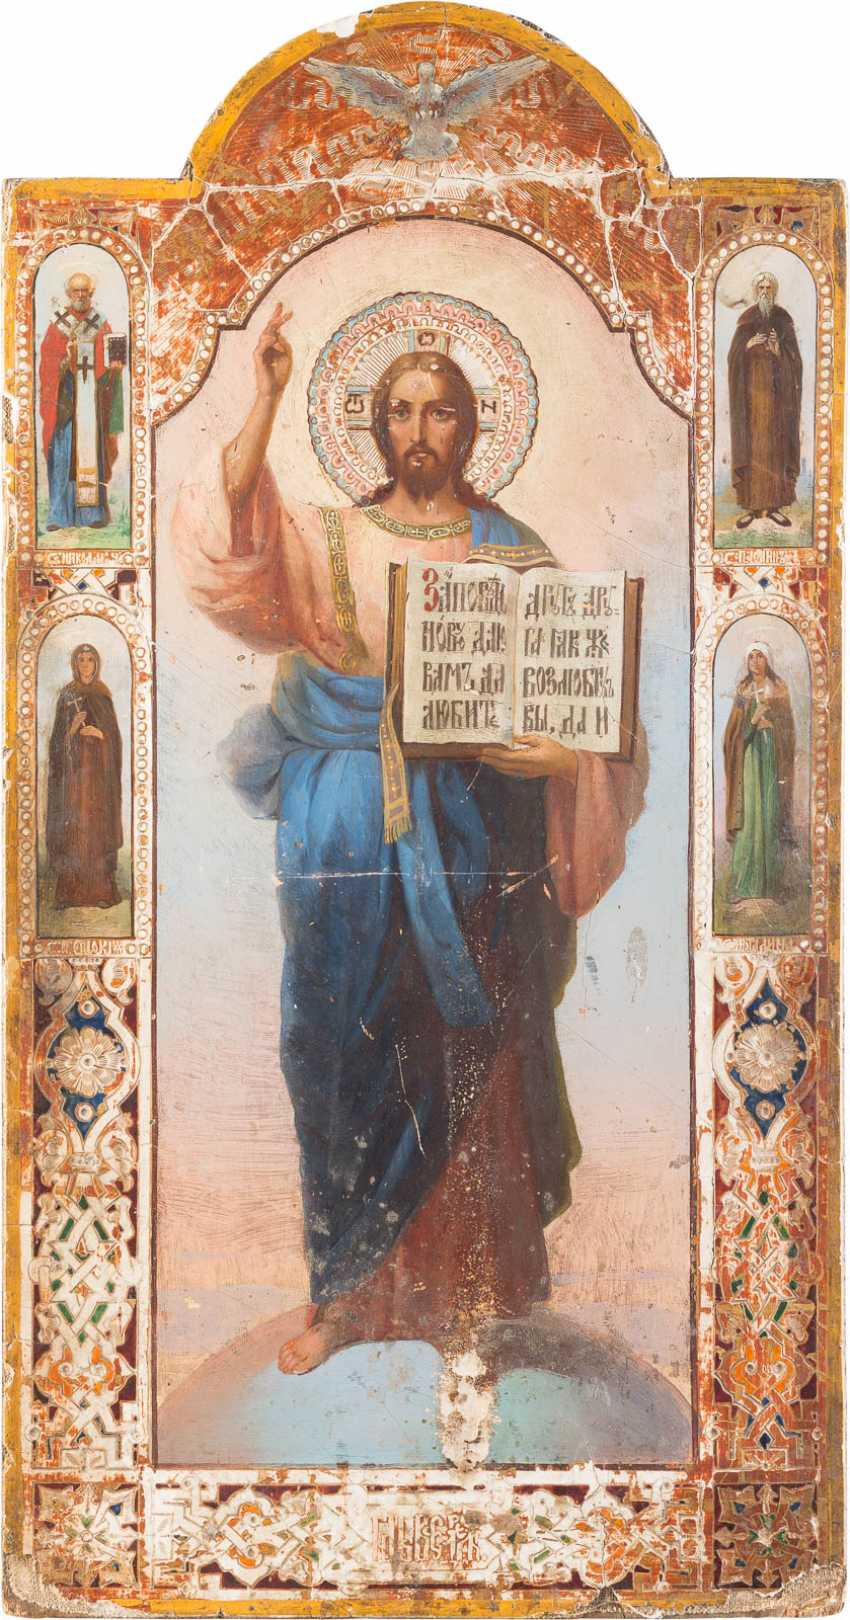 LARGE-SIZED ICON OF CHRIST THE RULER OF THE WORLD - photo 1